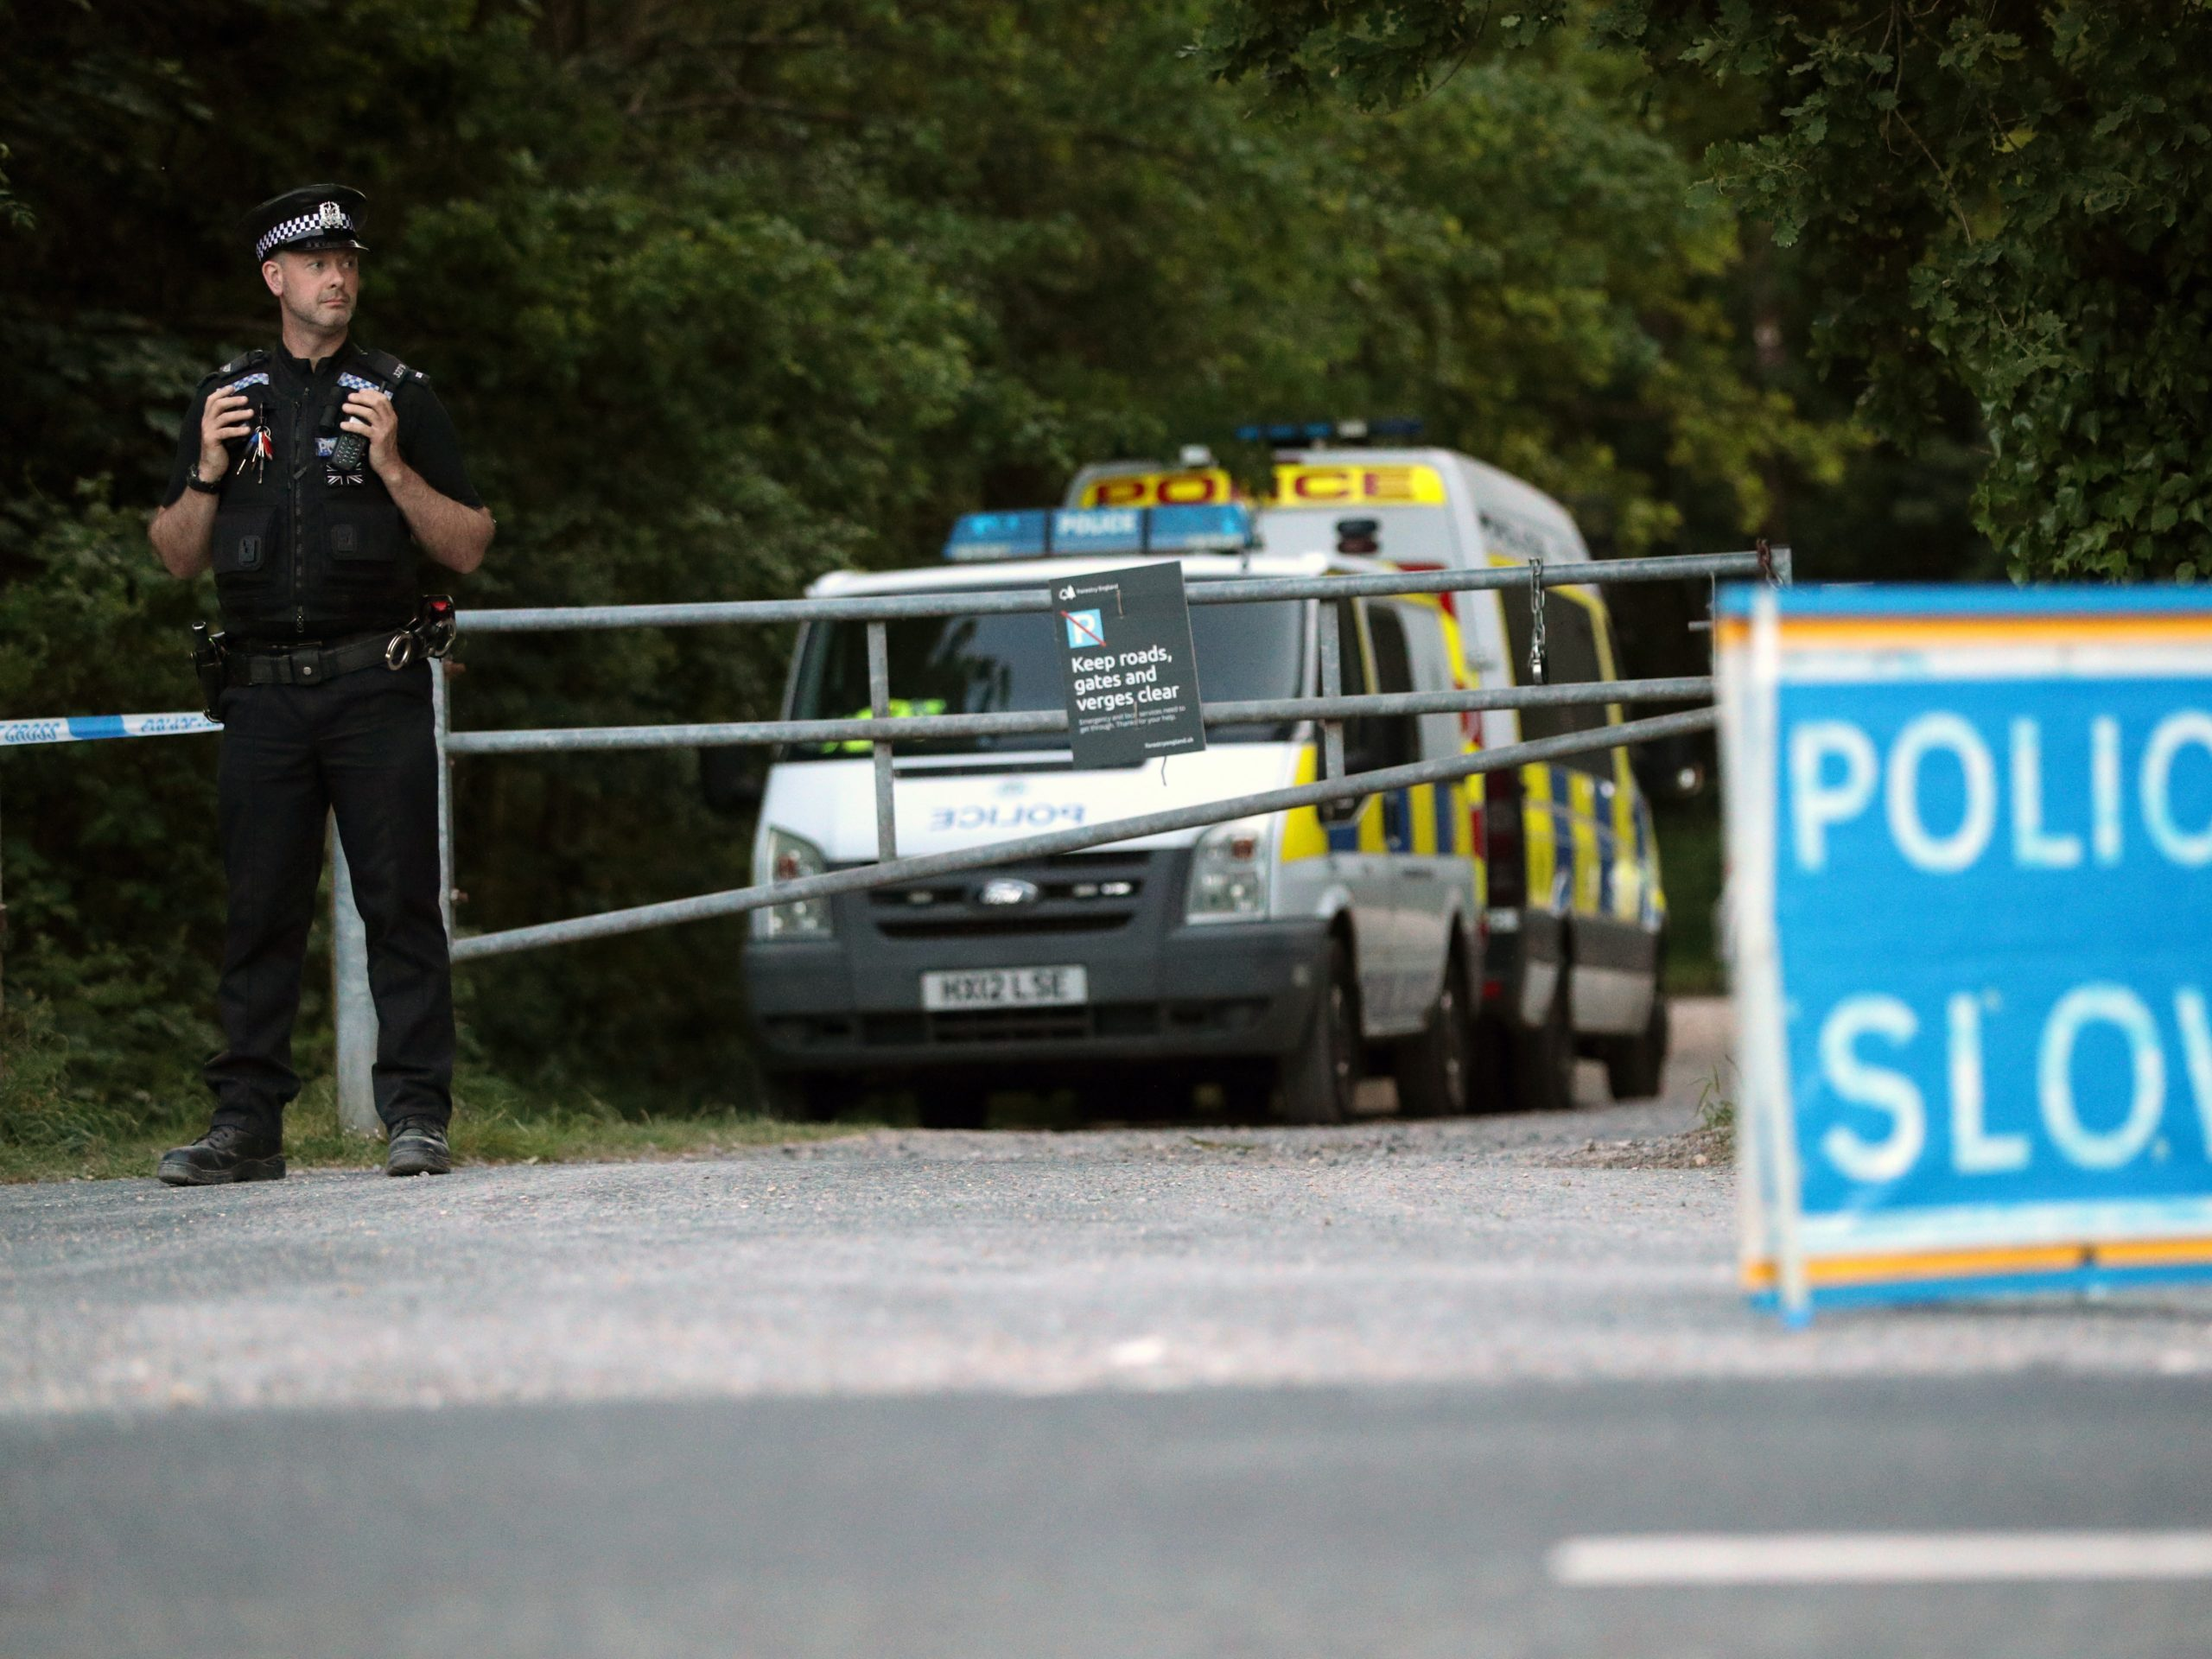 Police confirm body of missing teenager has been found